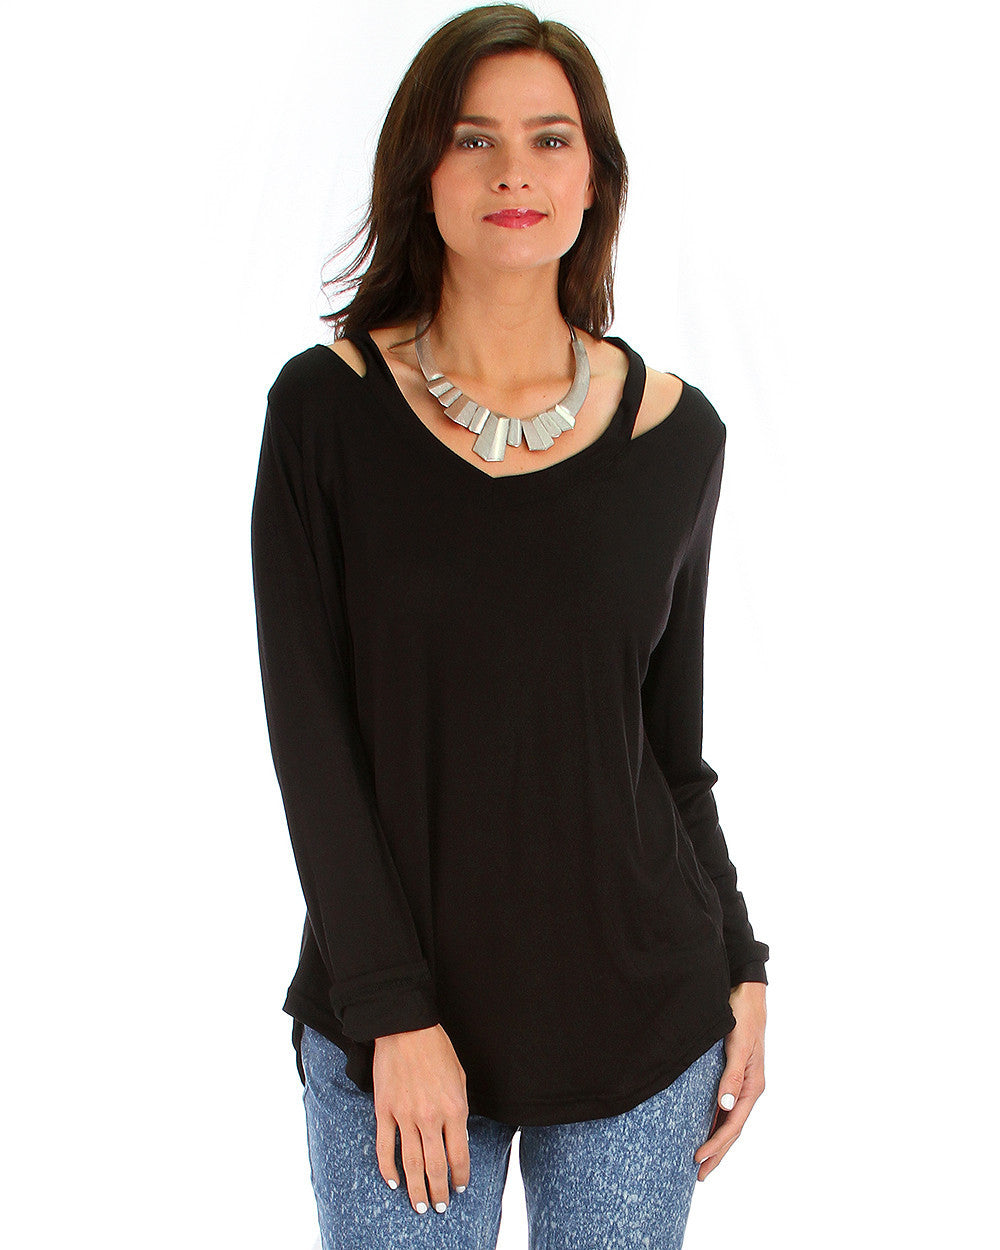 Cut Me Out! Long Sleeve Top In Black